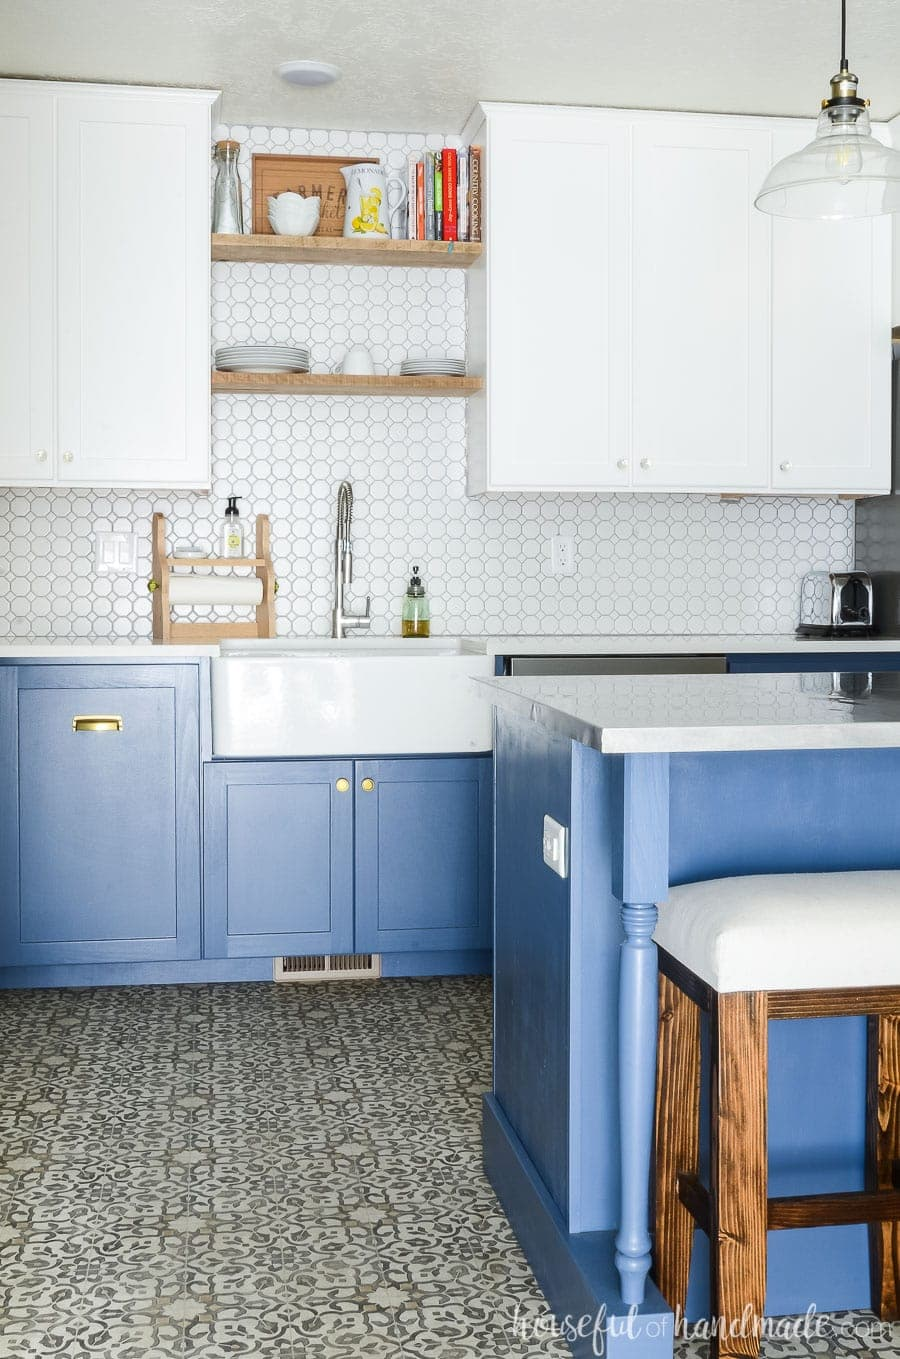 Two tone kitchen with white upper cabinets and blue base cabinets. Apron front kitchen sink with rustic open shelving. Patterned vinyl flooring.